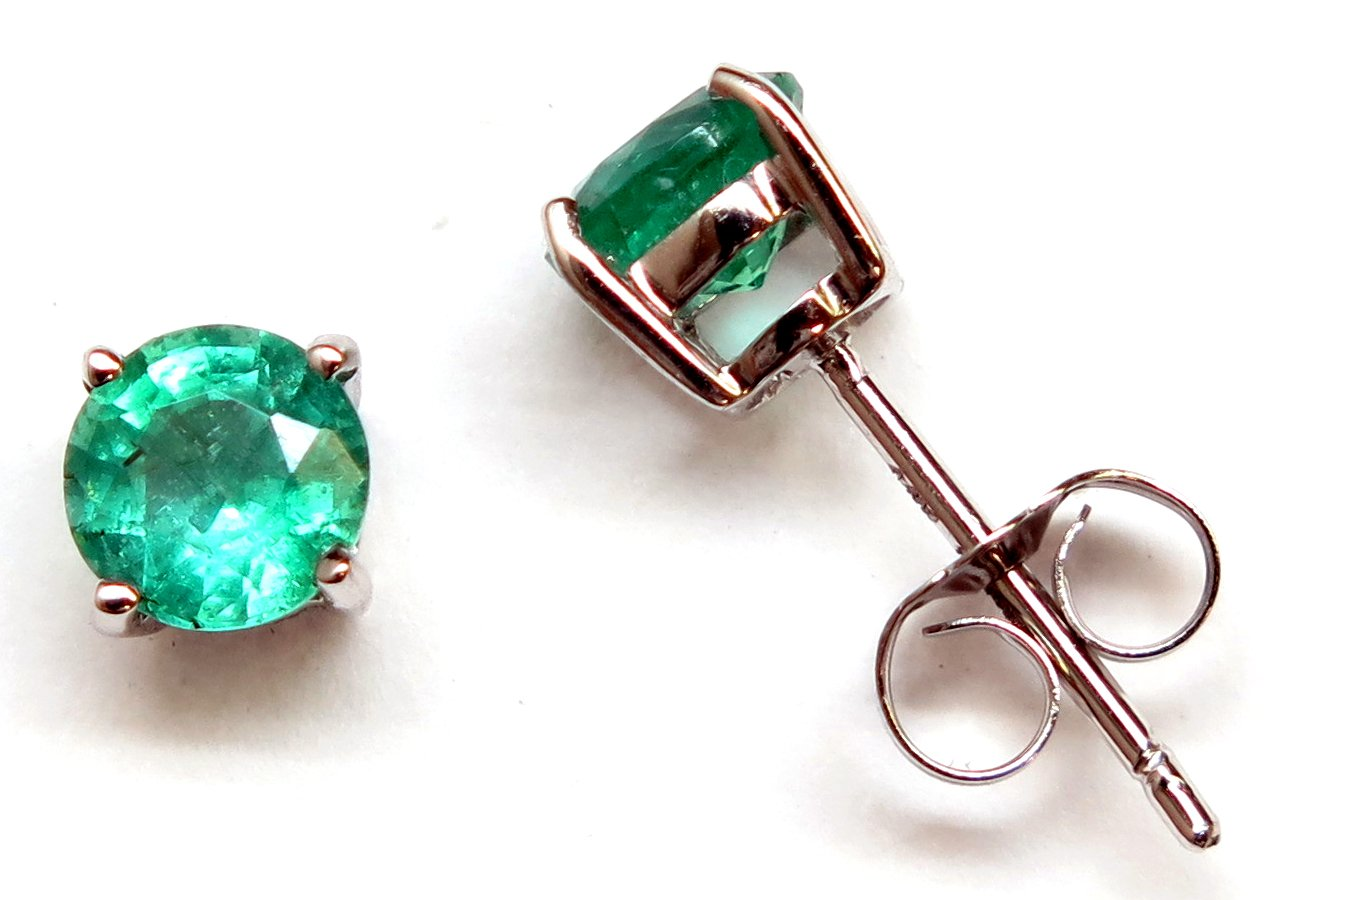 14K Solid White Gold Round 5.0mm Genuine AAA Emerald=1.00 ct. Stud Earrings